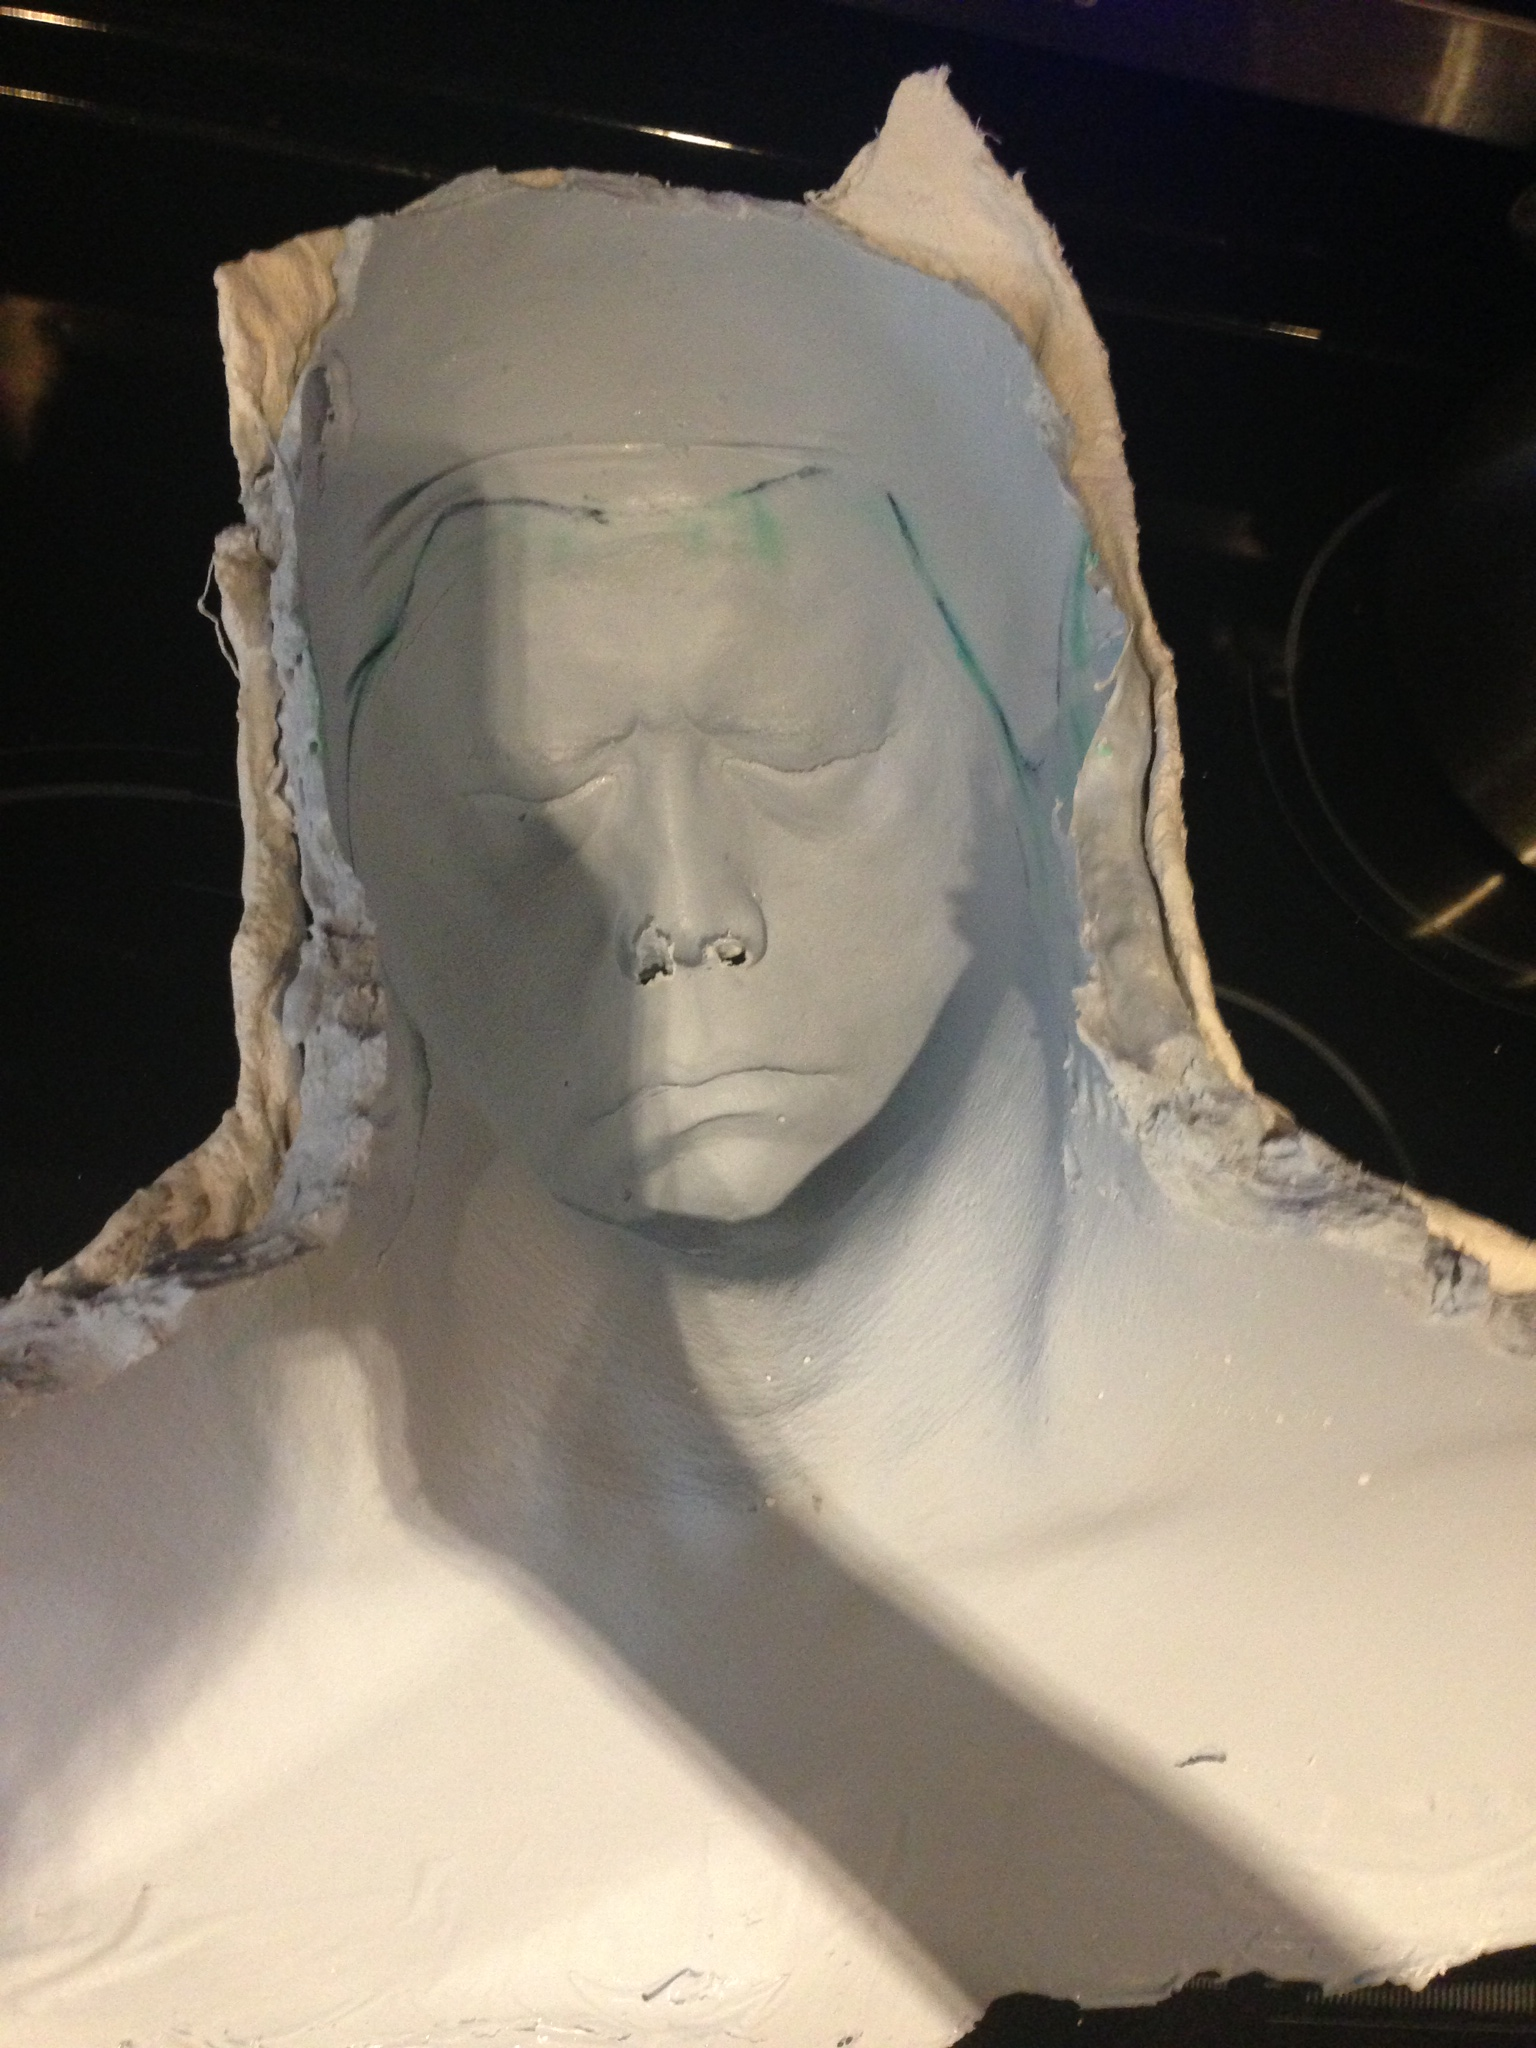 Richard Dorton's finished mold